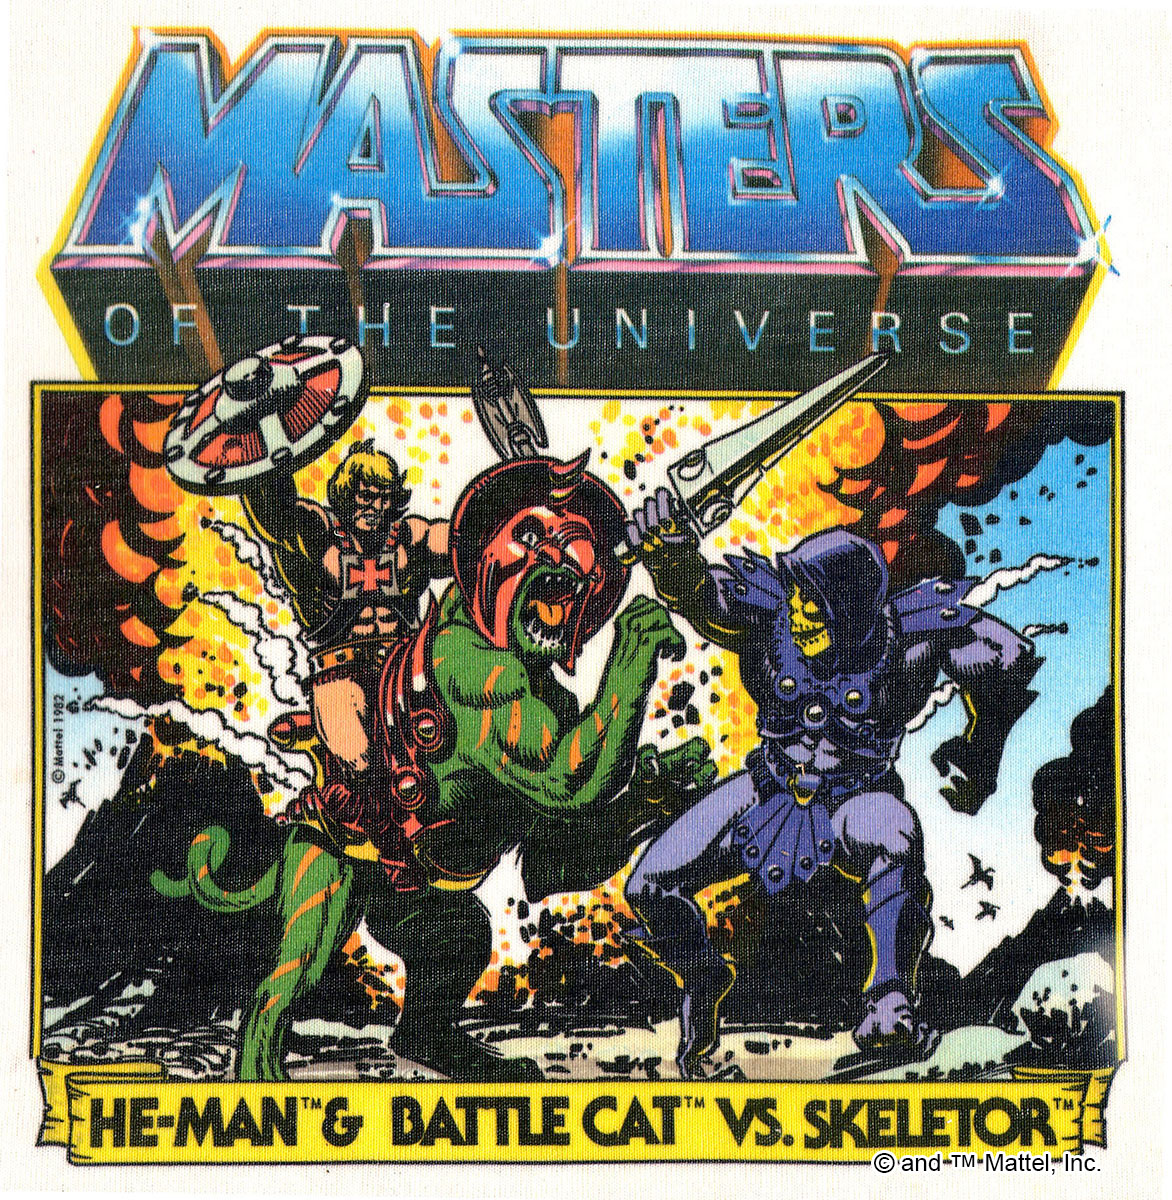 he-manandbattlecatvsskeletor-color_full